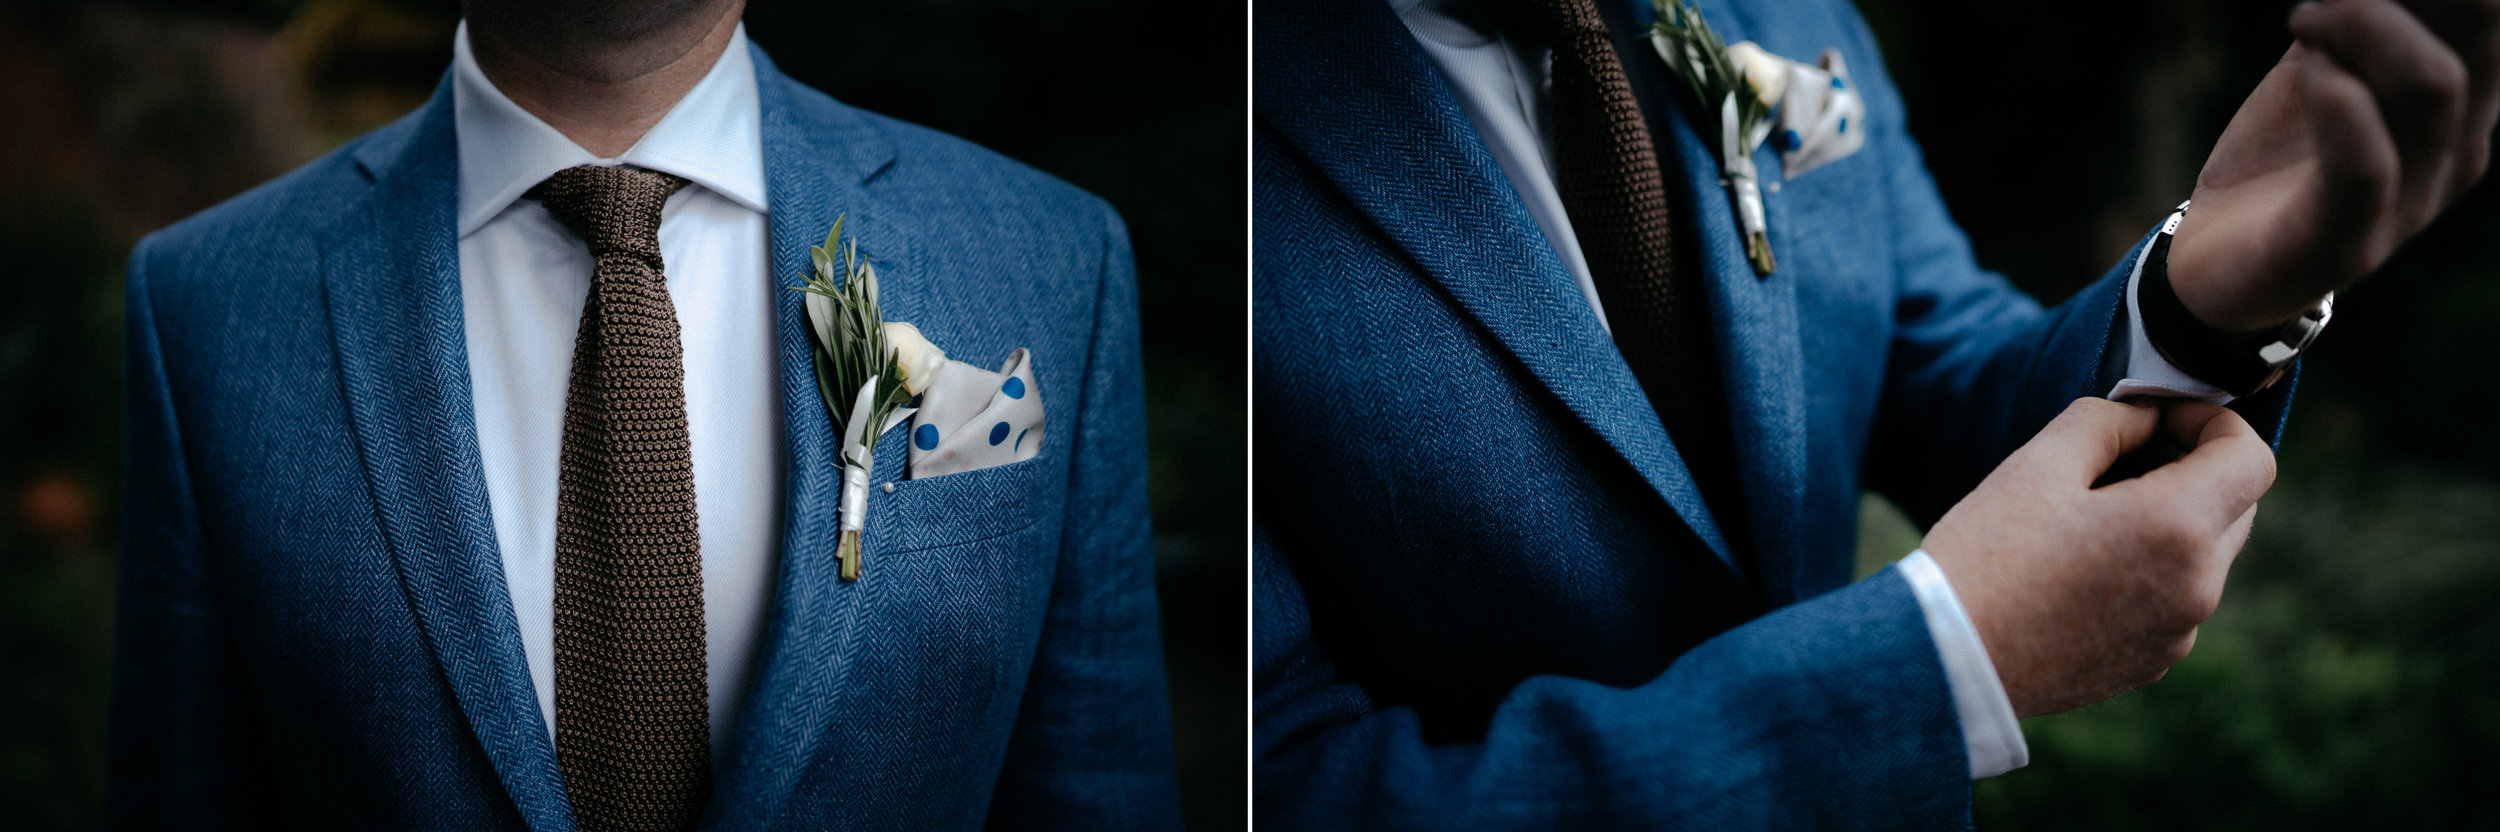 wedding photography london details groom suit